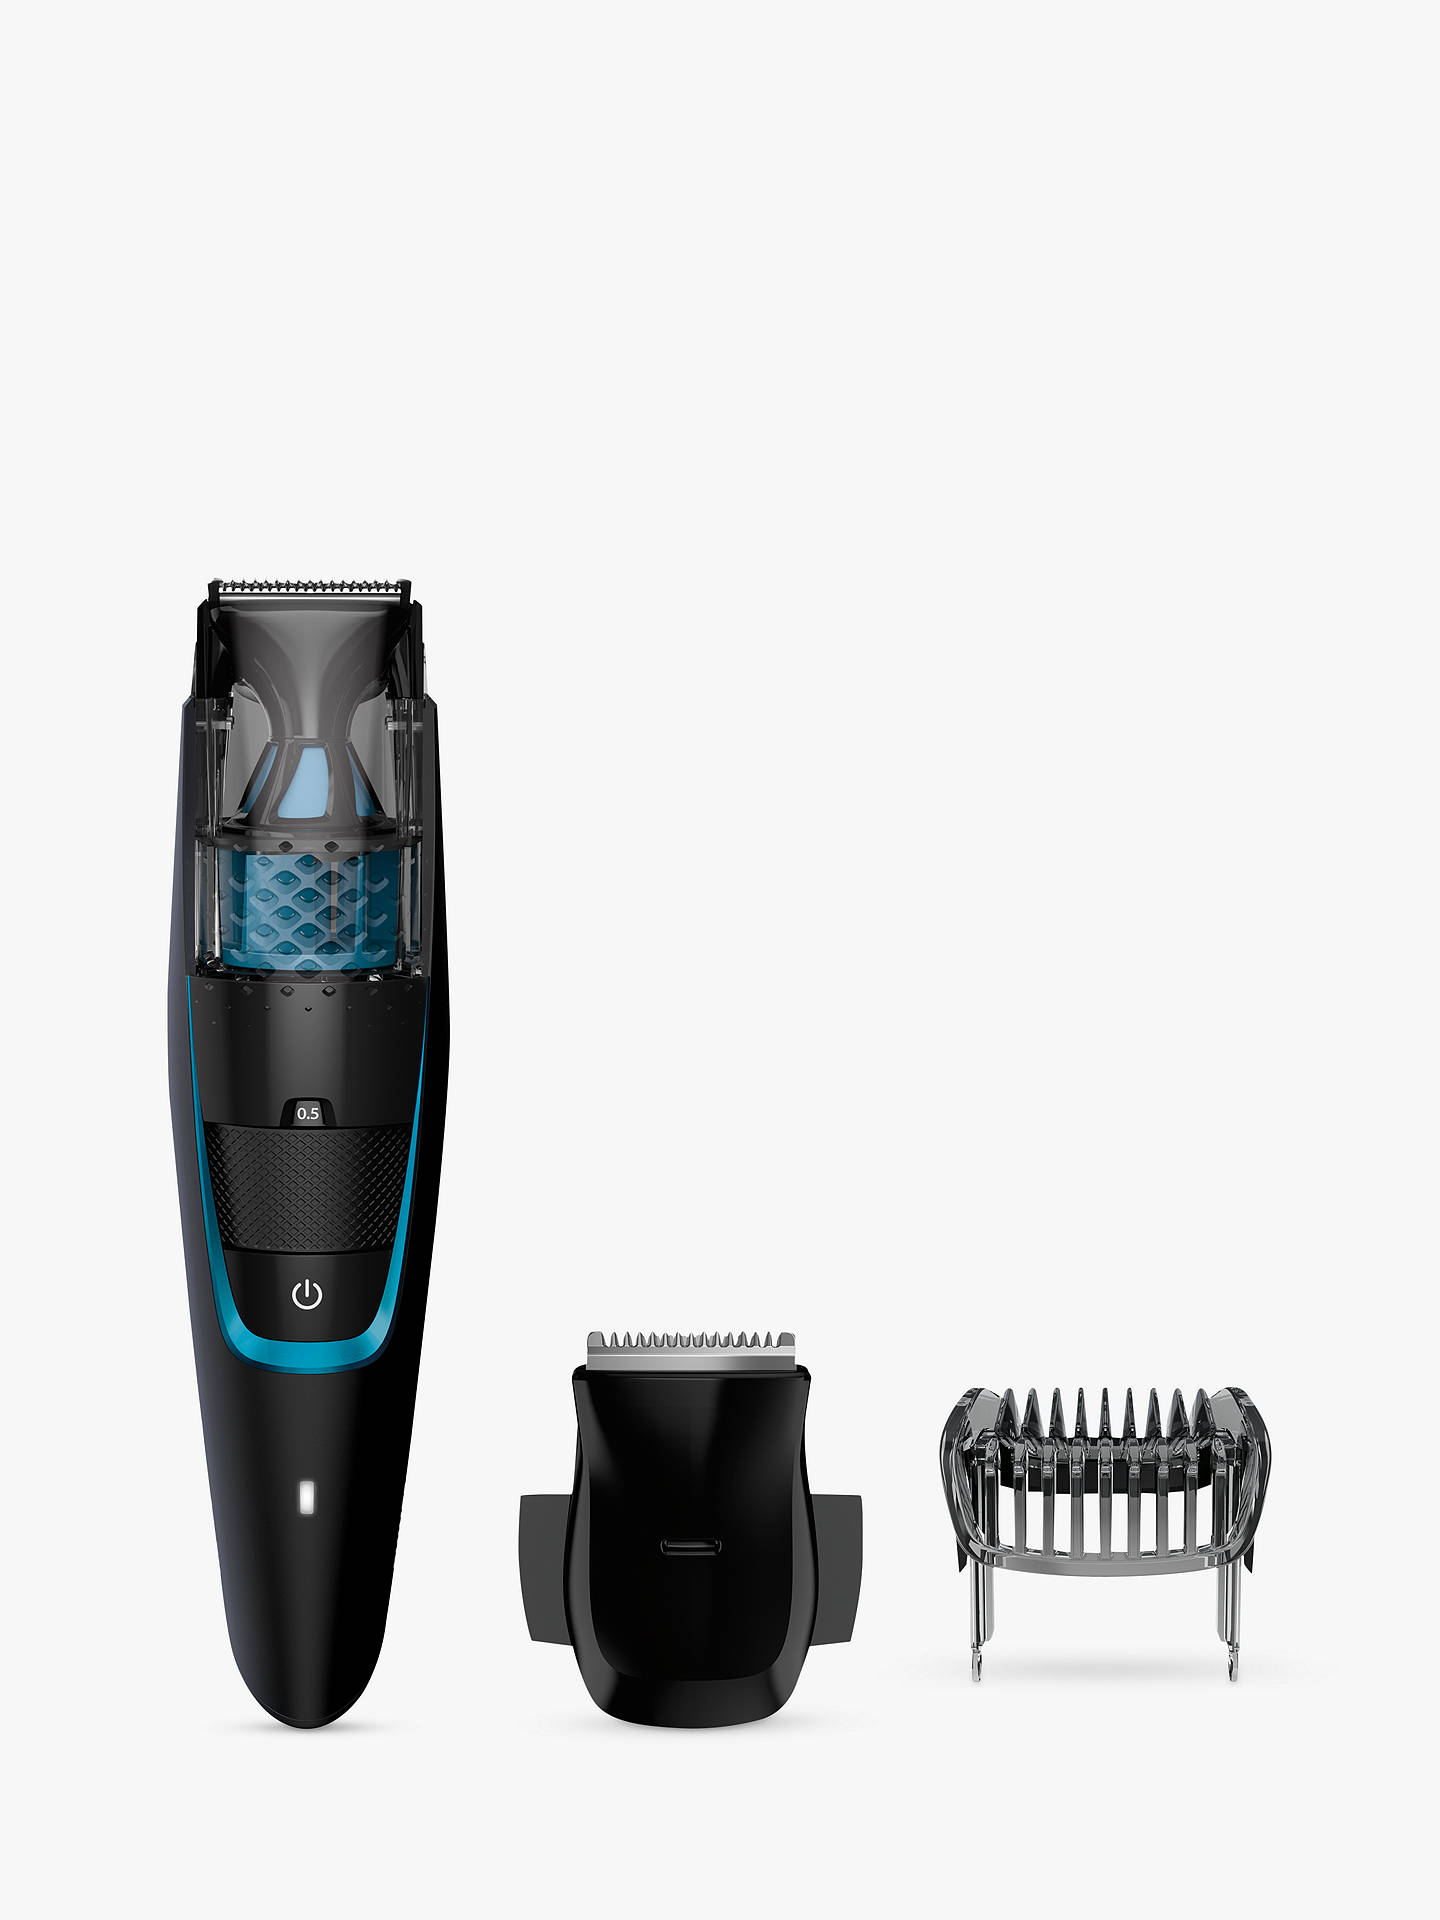 BuyPhilips BT7202/13 Series 7000 Beard and Stubble Trimmer with Integrated Vacuum System Online at johnlewis.com